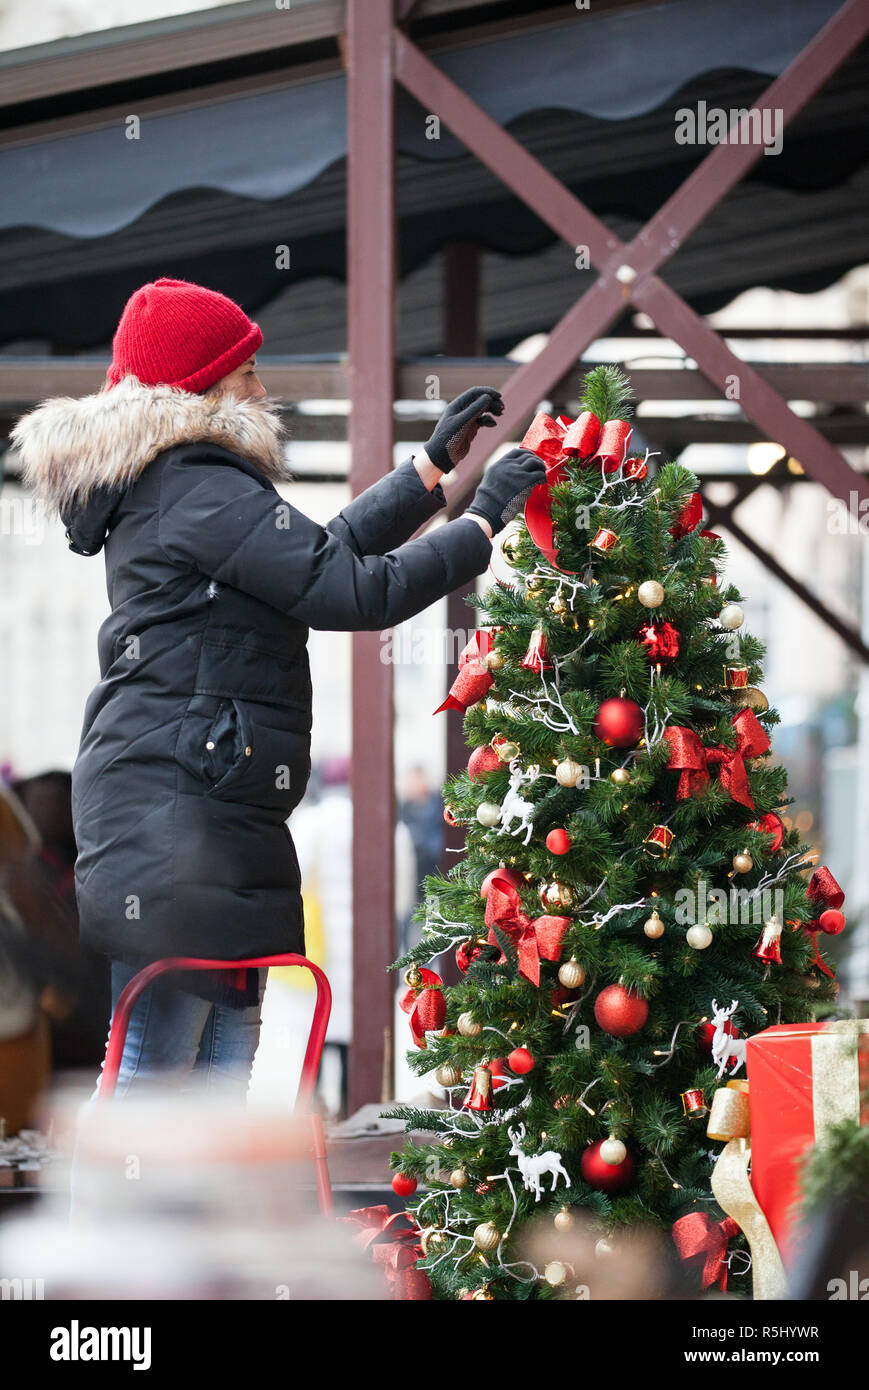 Decorating Christmas Trees Outside.Woman Decorating Christmas Tree Outside Outdoor Christmas